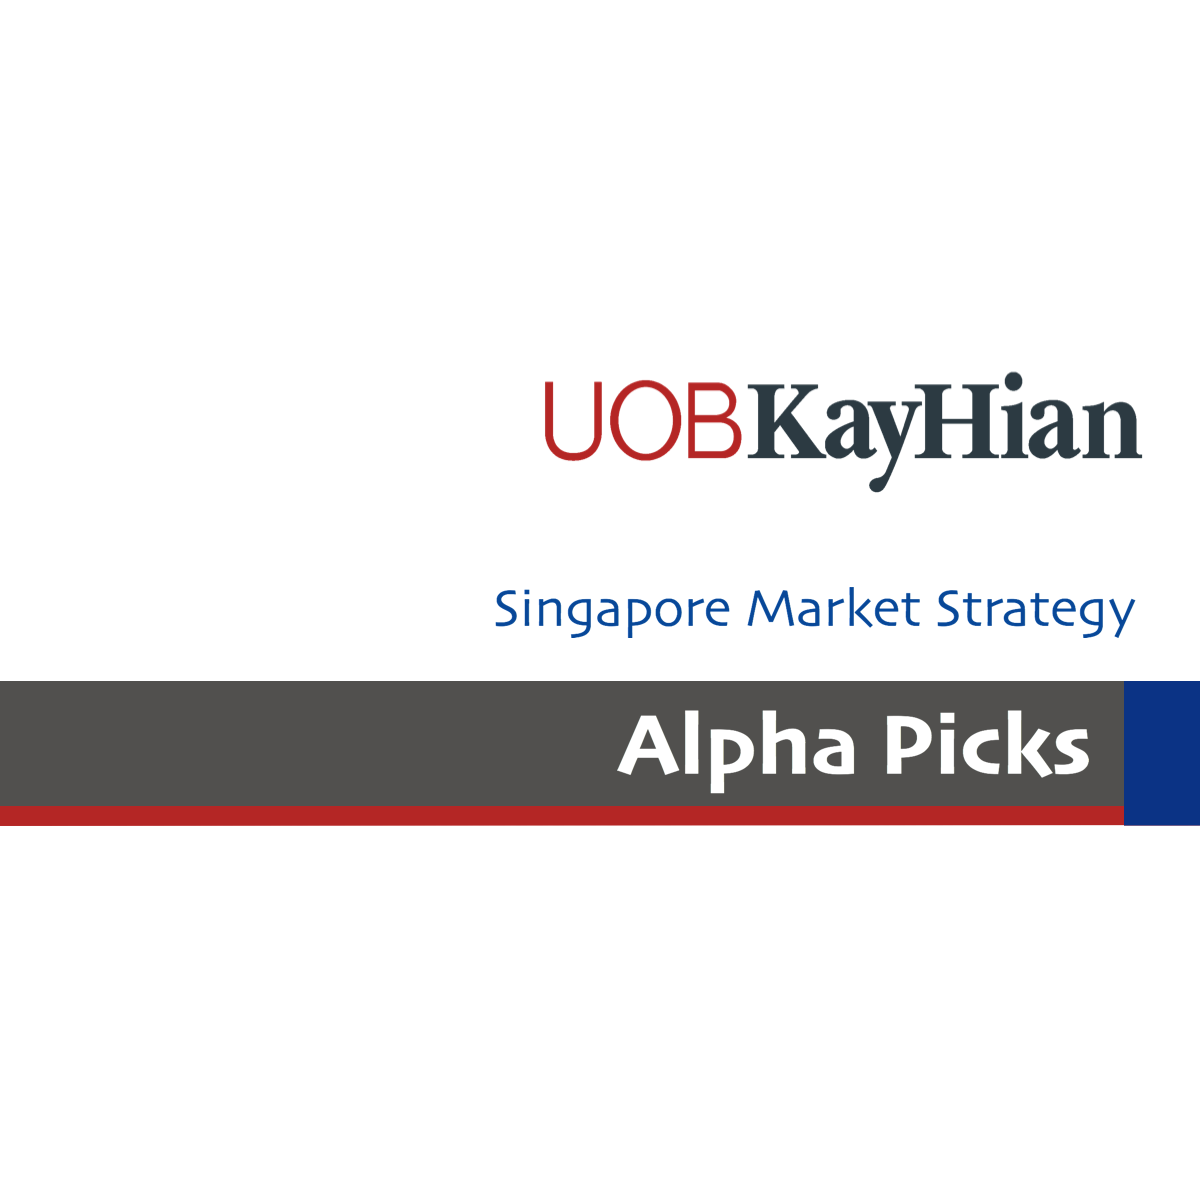 Alpha Picks - UOB Kay Hian 2017-06-05: Adjustment Amid Toppish Valuations